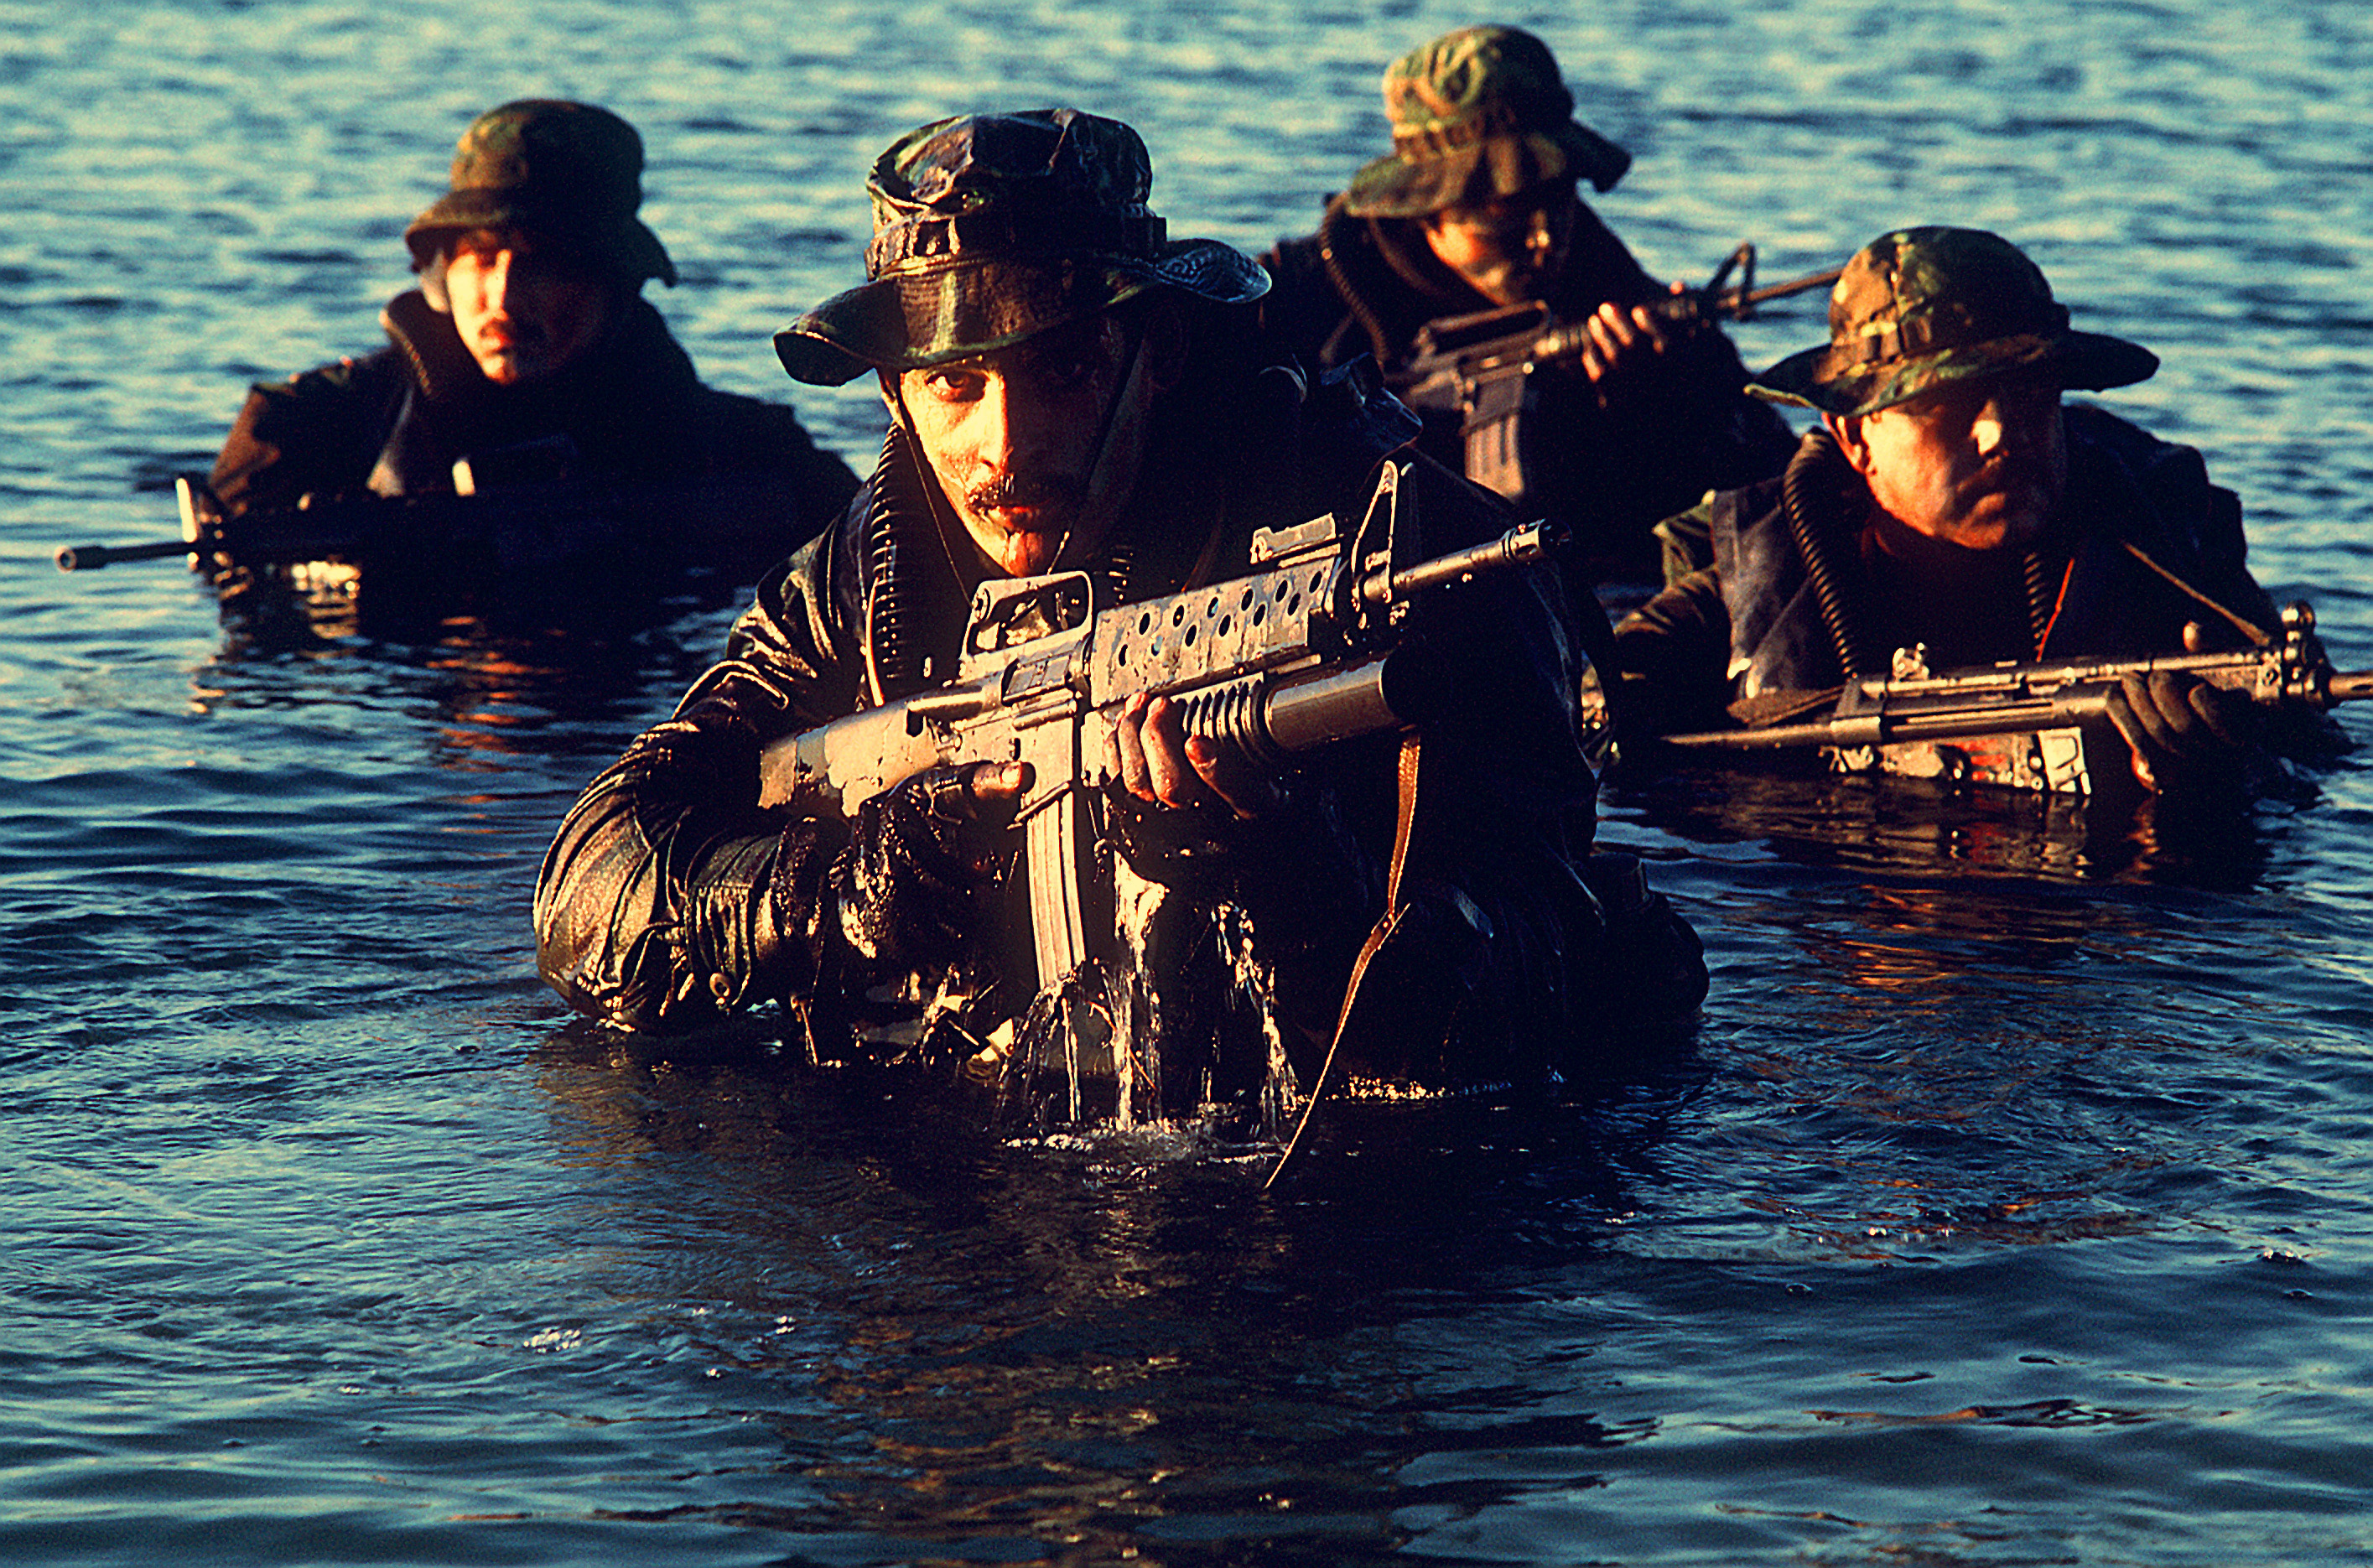 soldiers Army Navy Seals HD Wallpaper